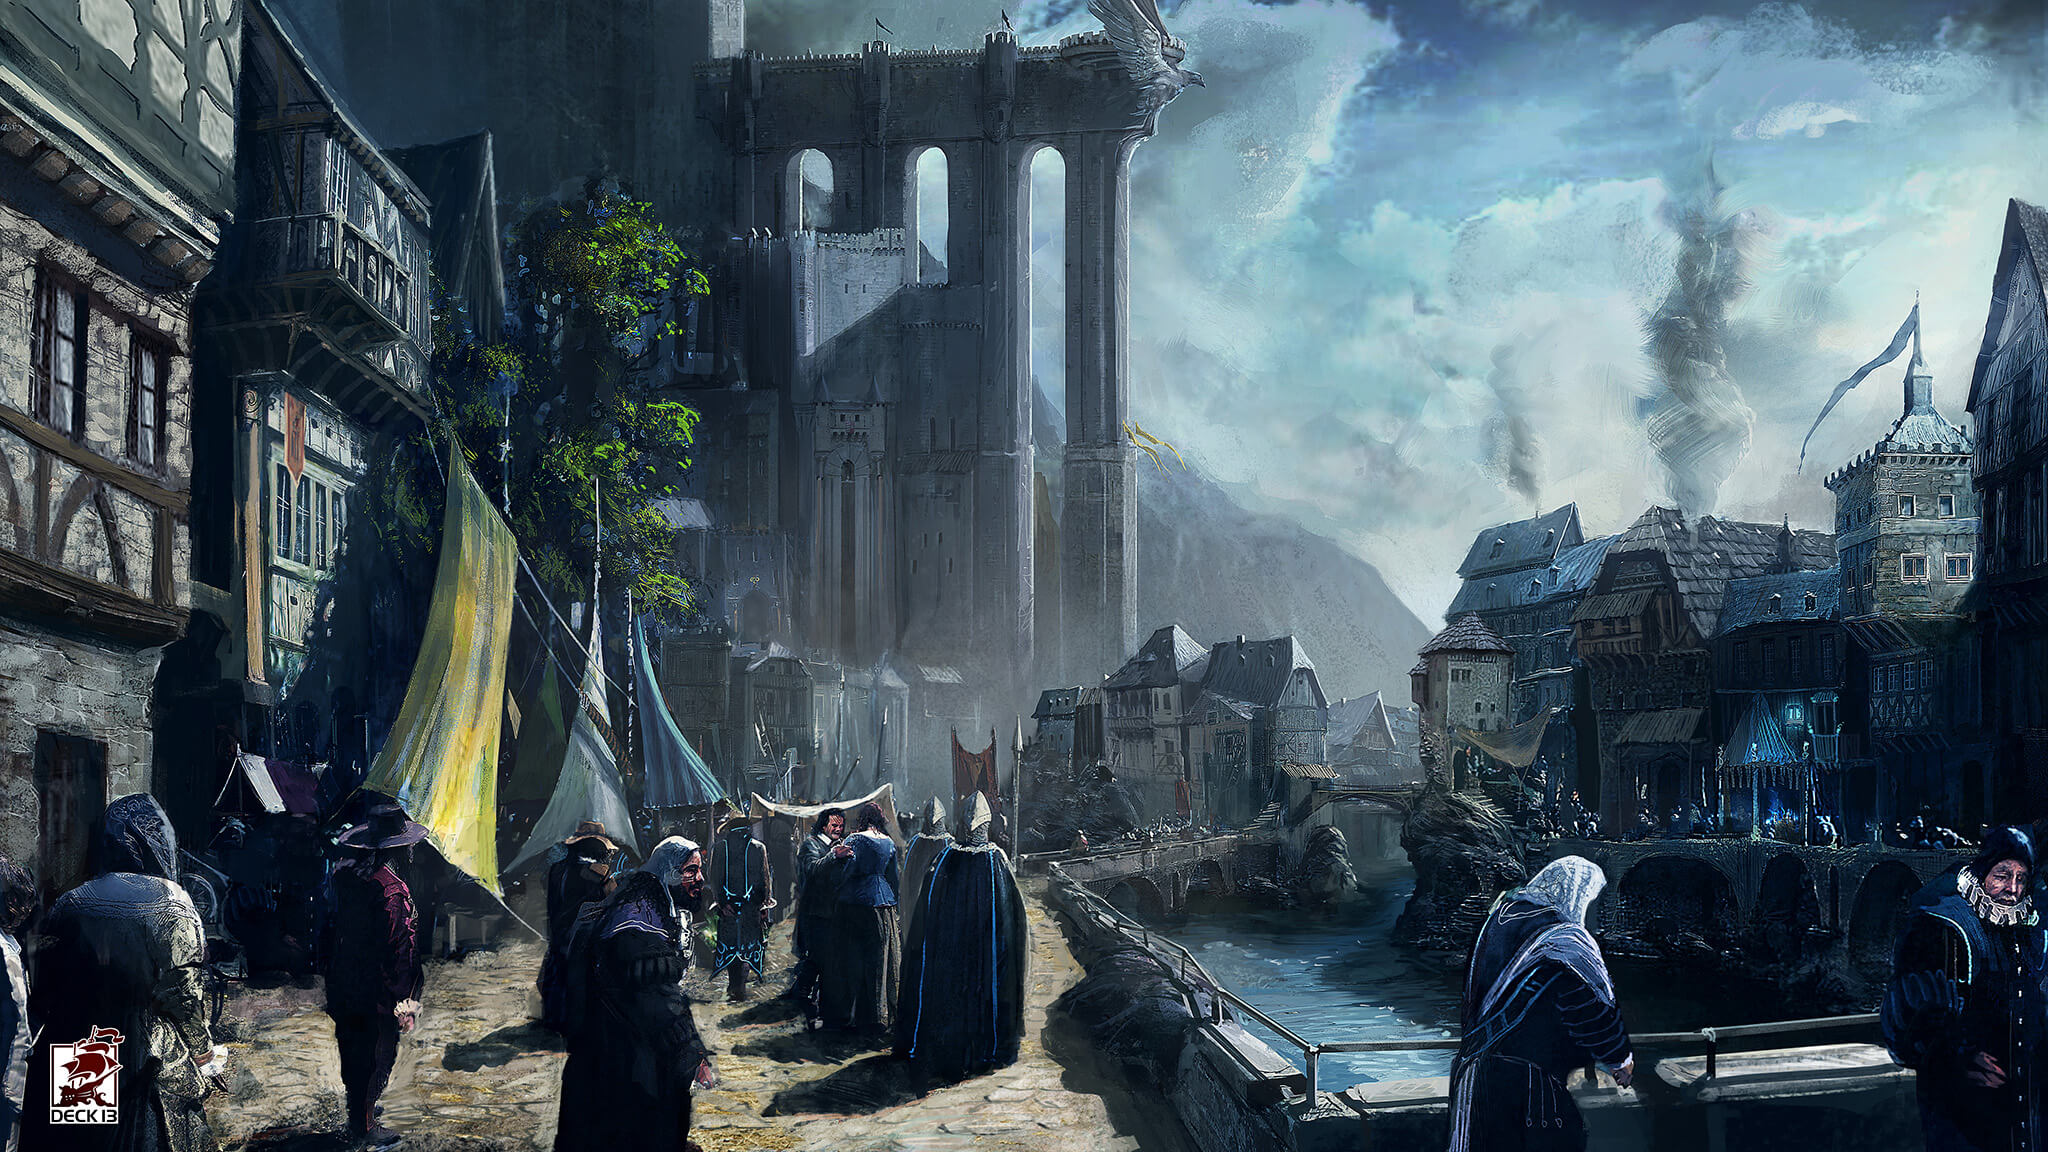 Dead-god-deck13-felix-botho-haas-concept-art-northern_city6